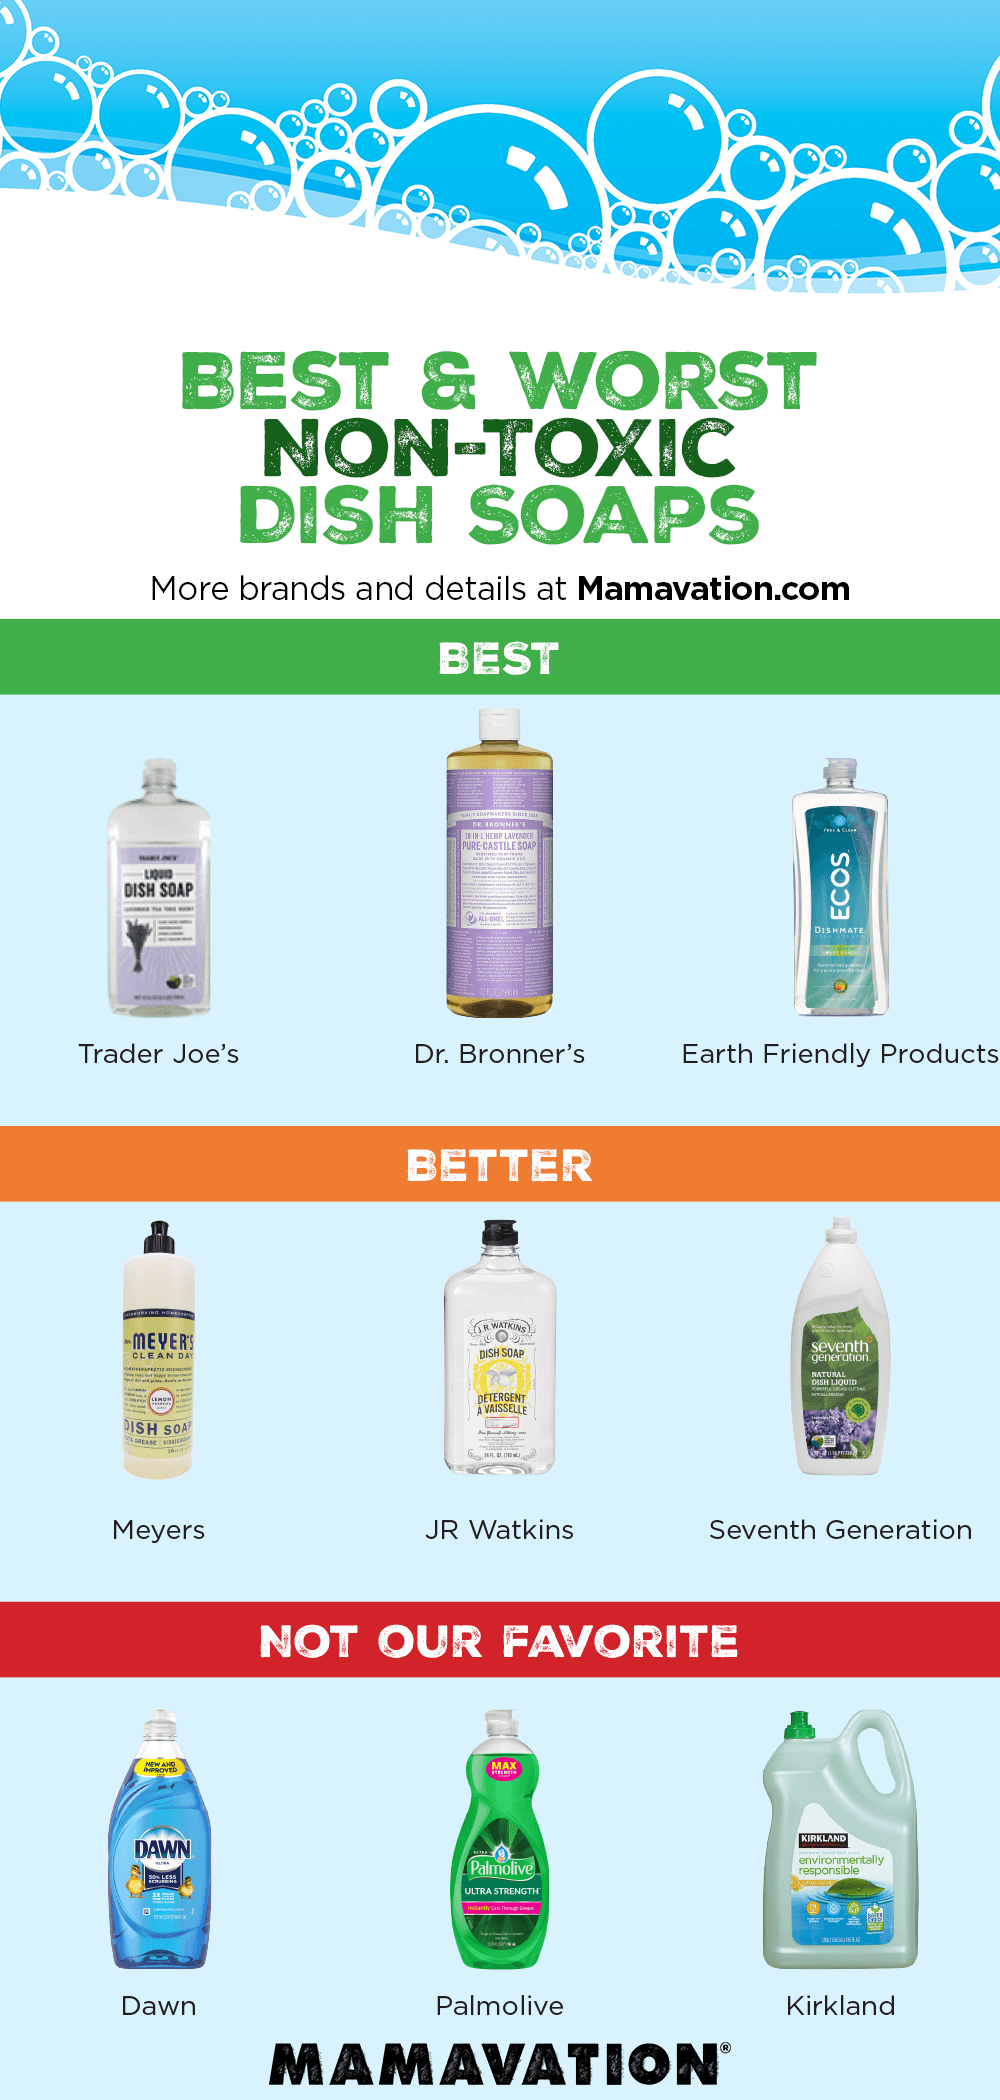 Best & Worst Dish Soap via Non-Toxic Ingredients 2020 1